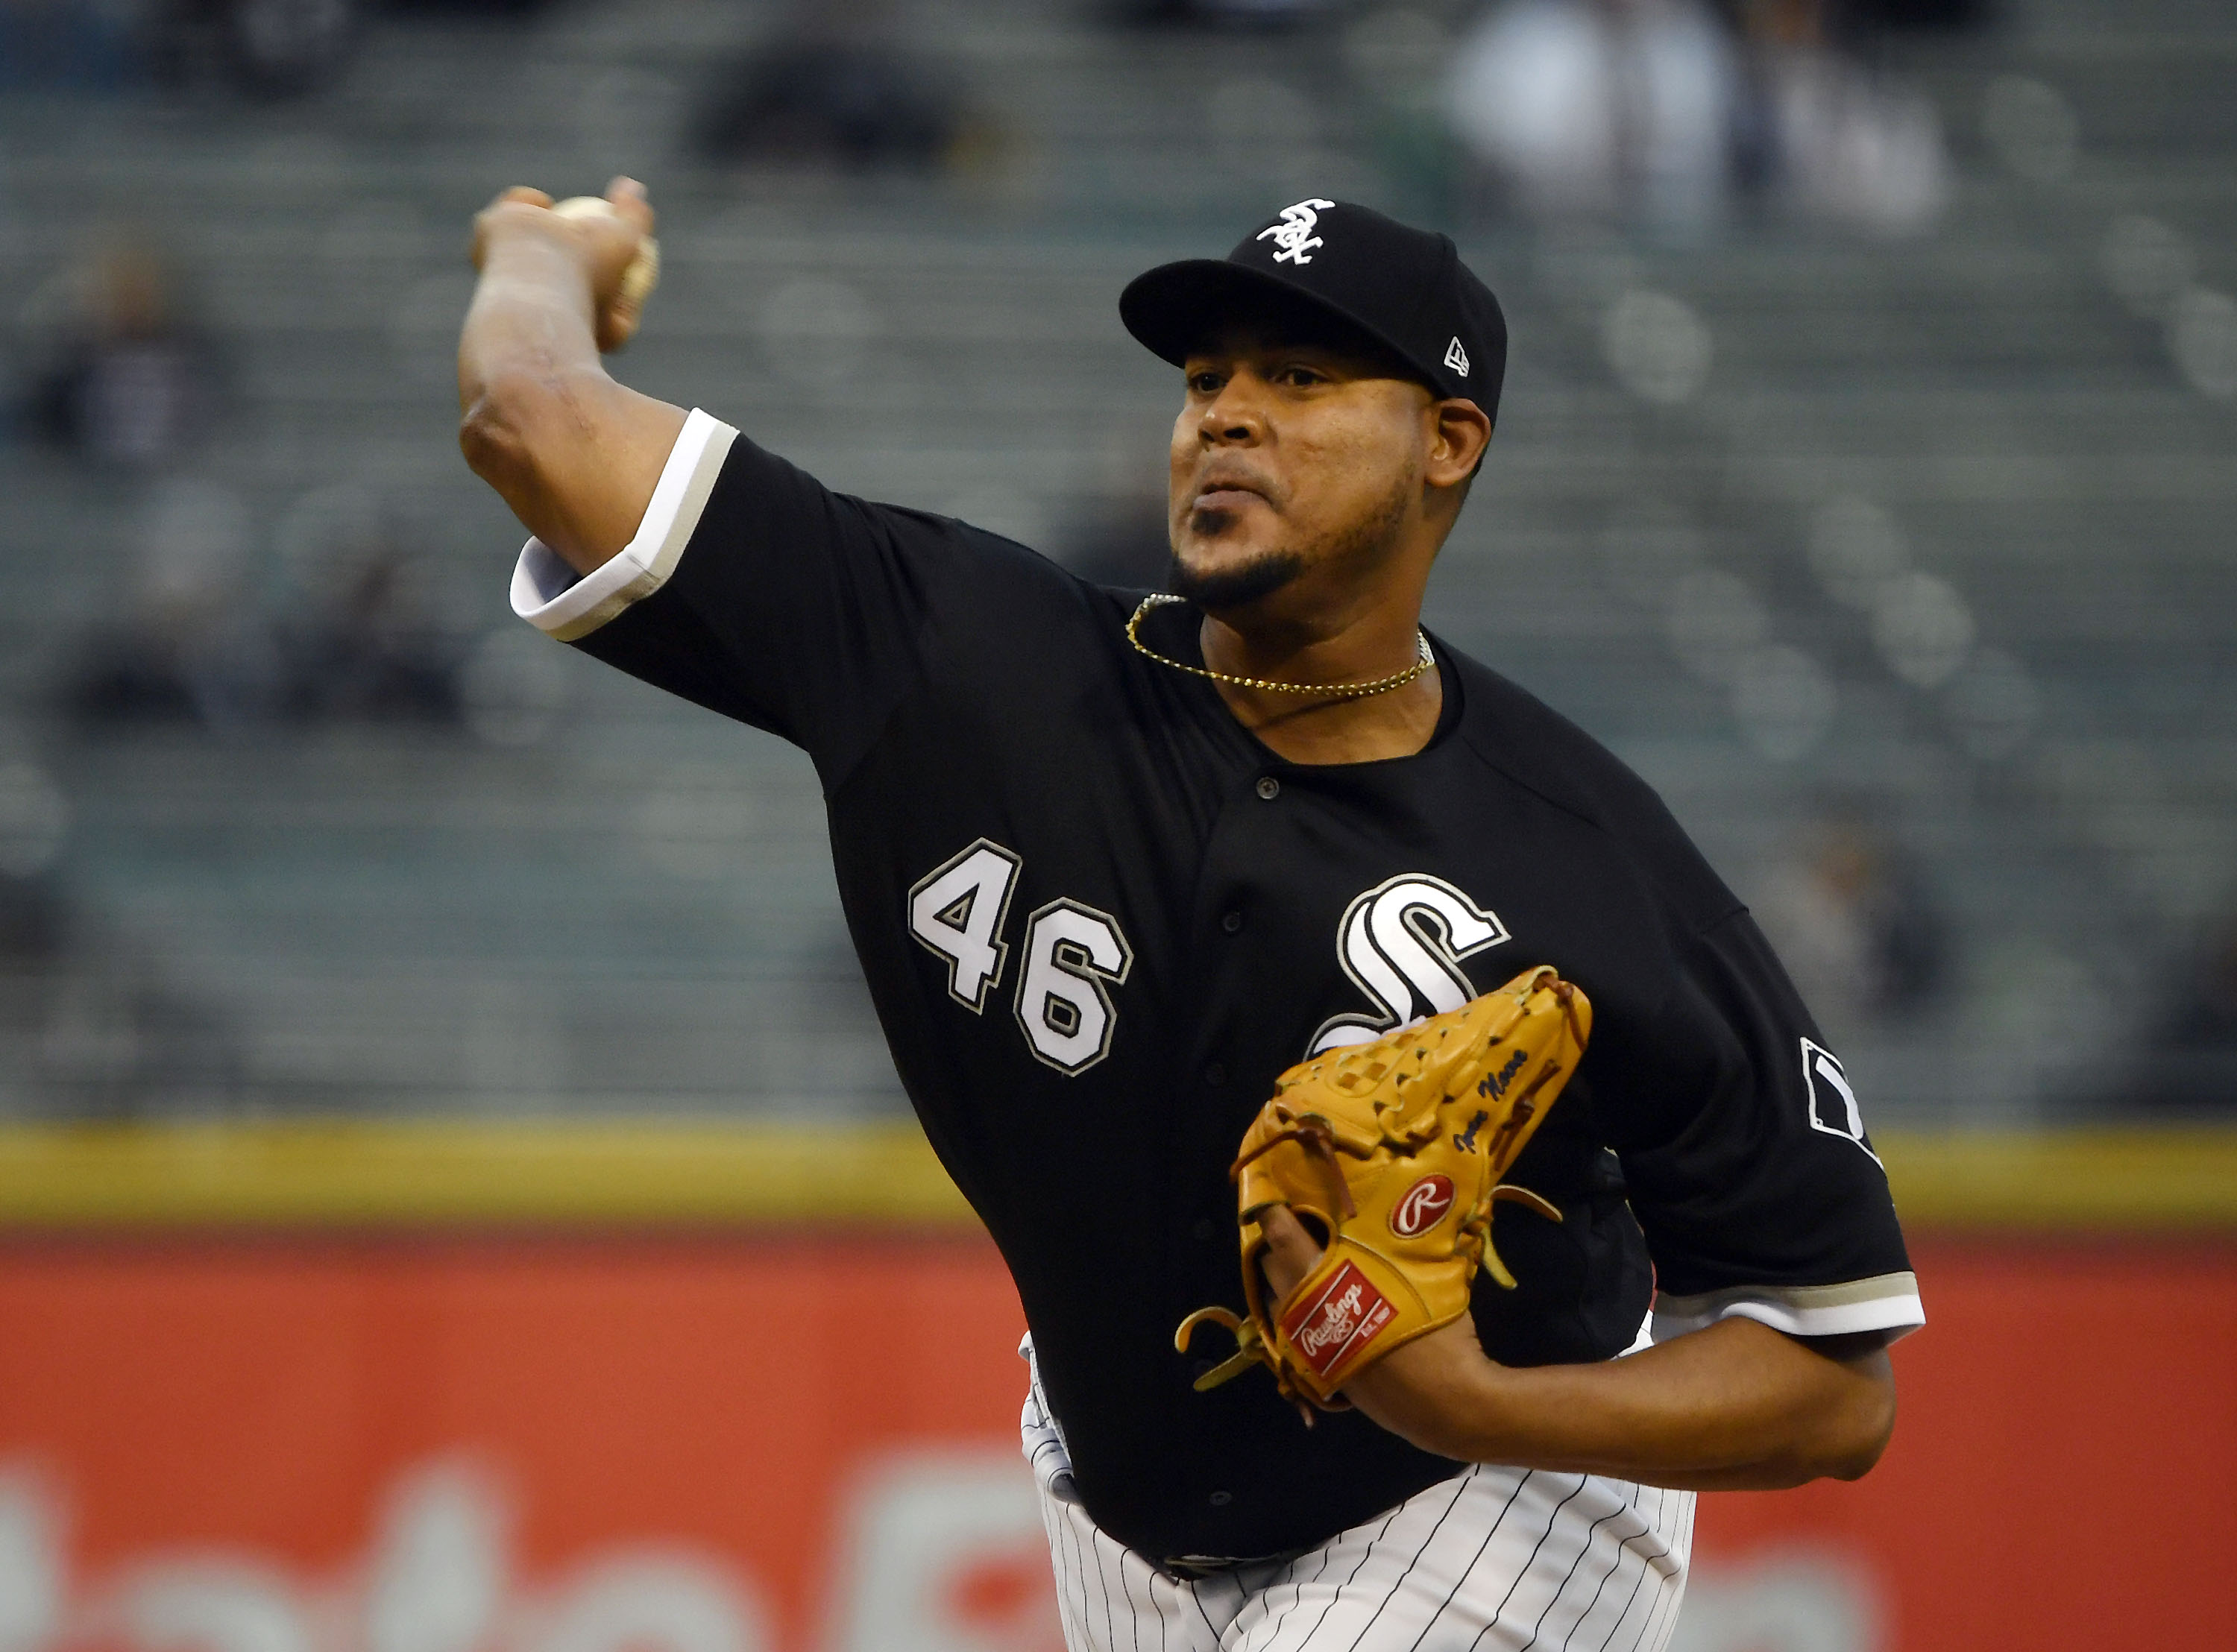 Tigers sign pitcher Ivan Nova from the White Sox